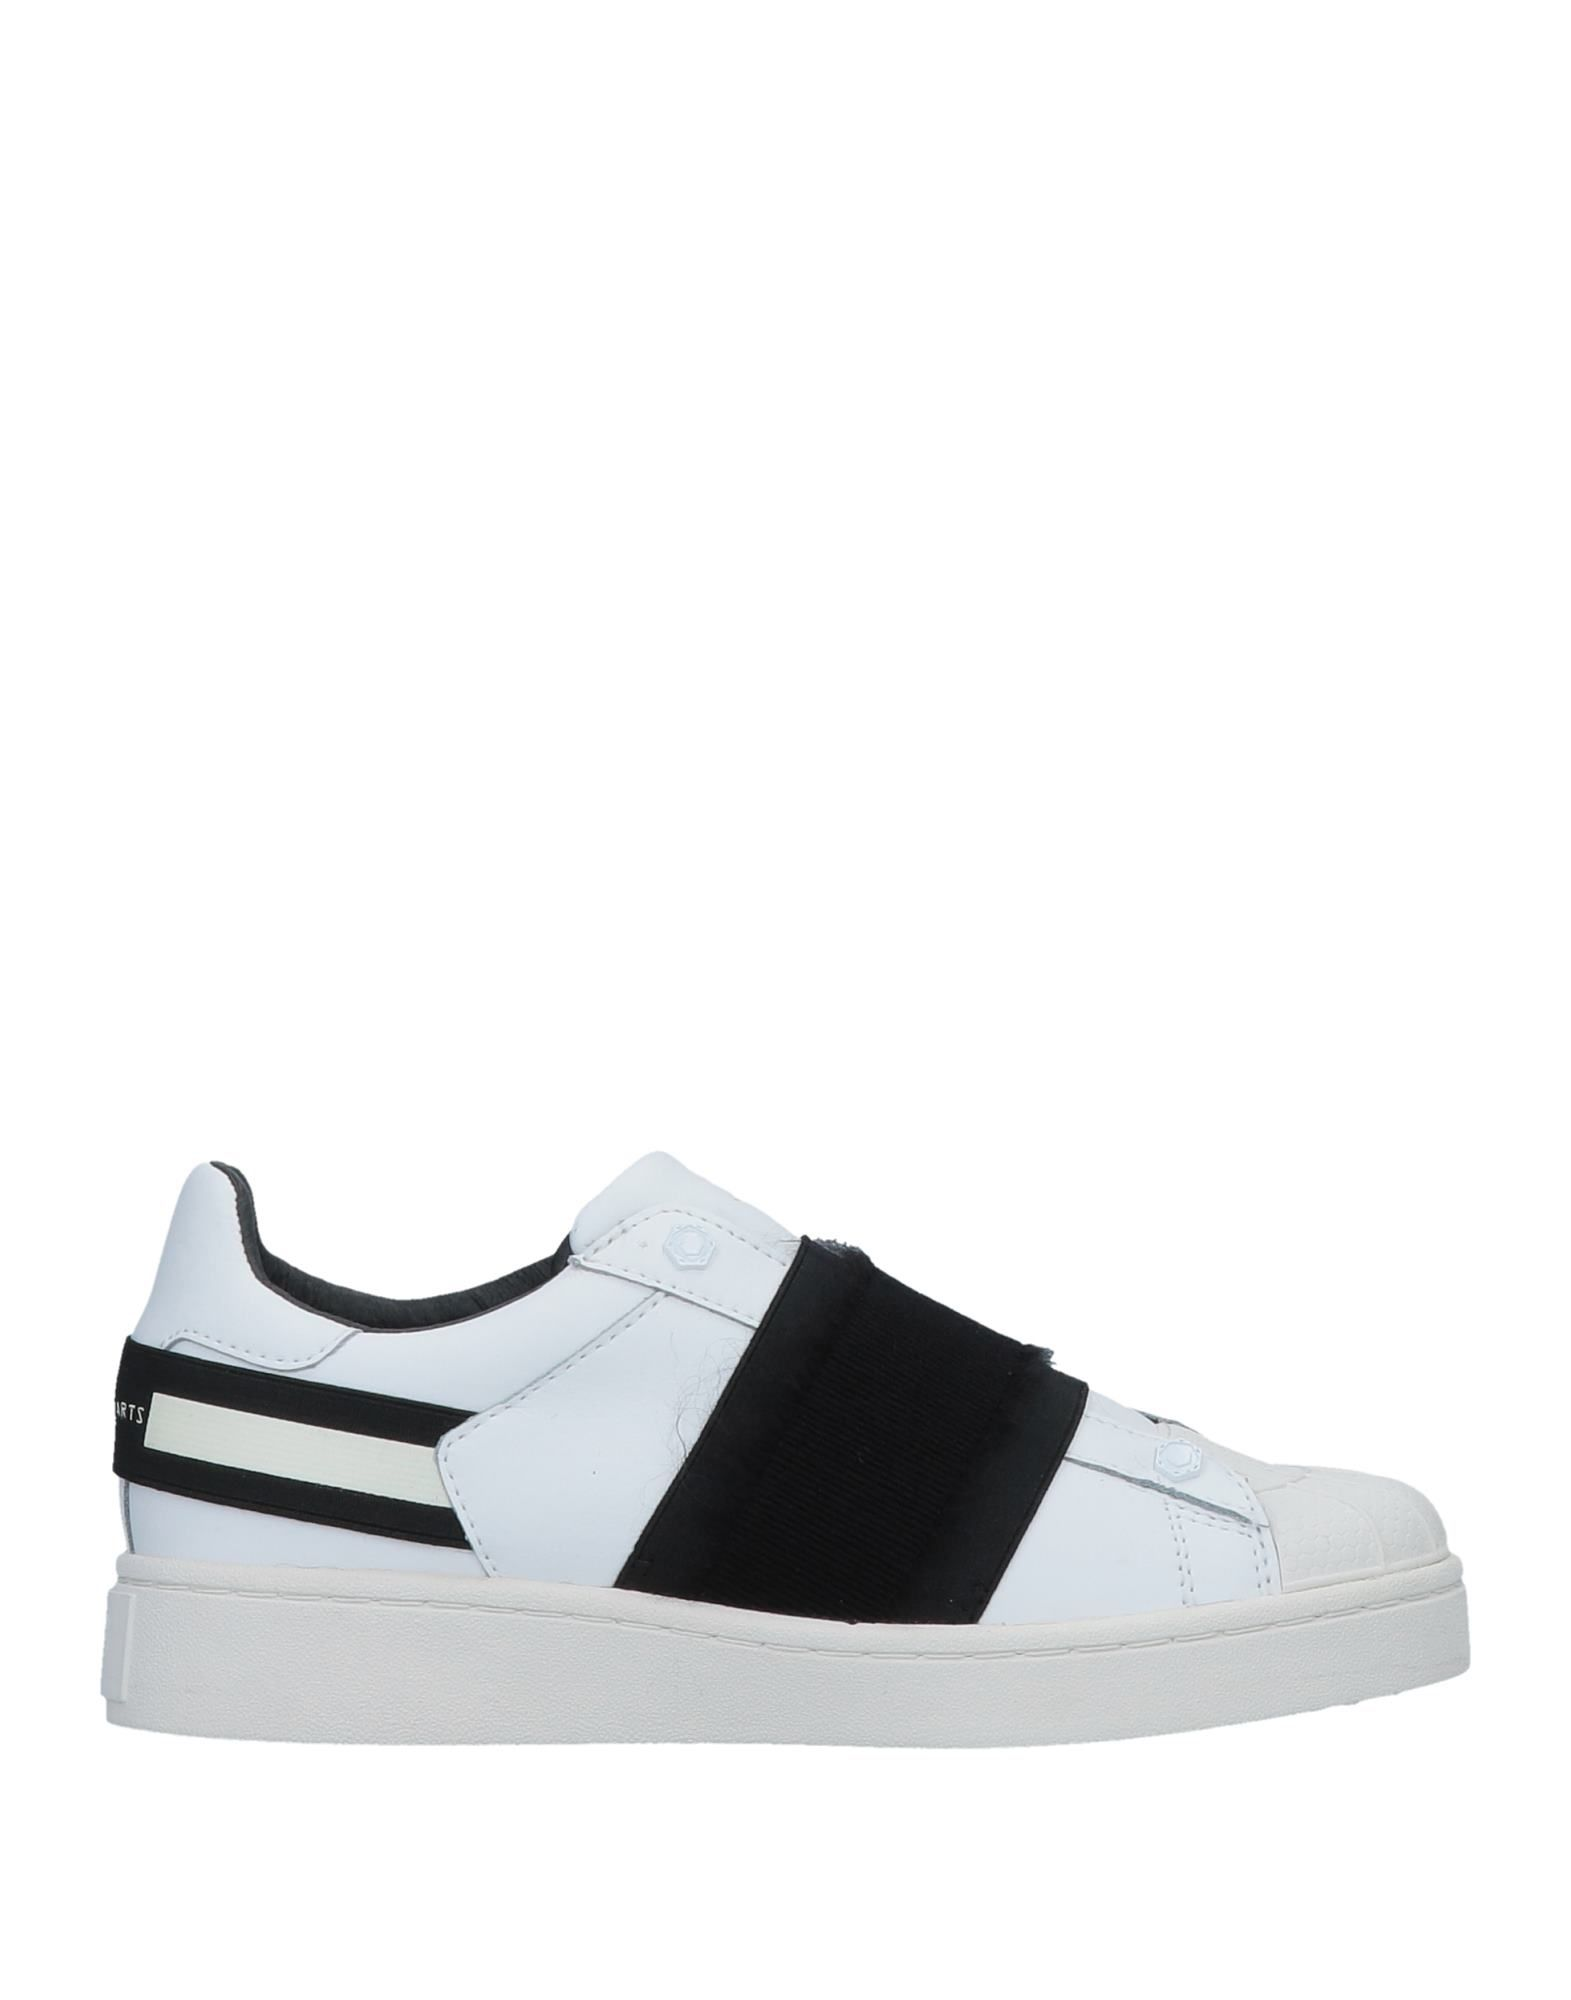 Moa Master Of Arts Master Sneakers - Women Moa Master Arts Of Arts Sneakers online on  Canada - 11509879CN fe0bce